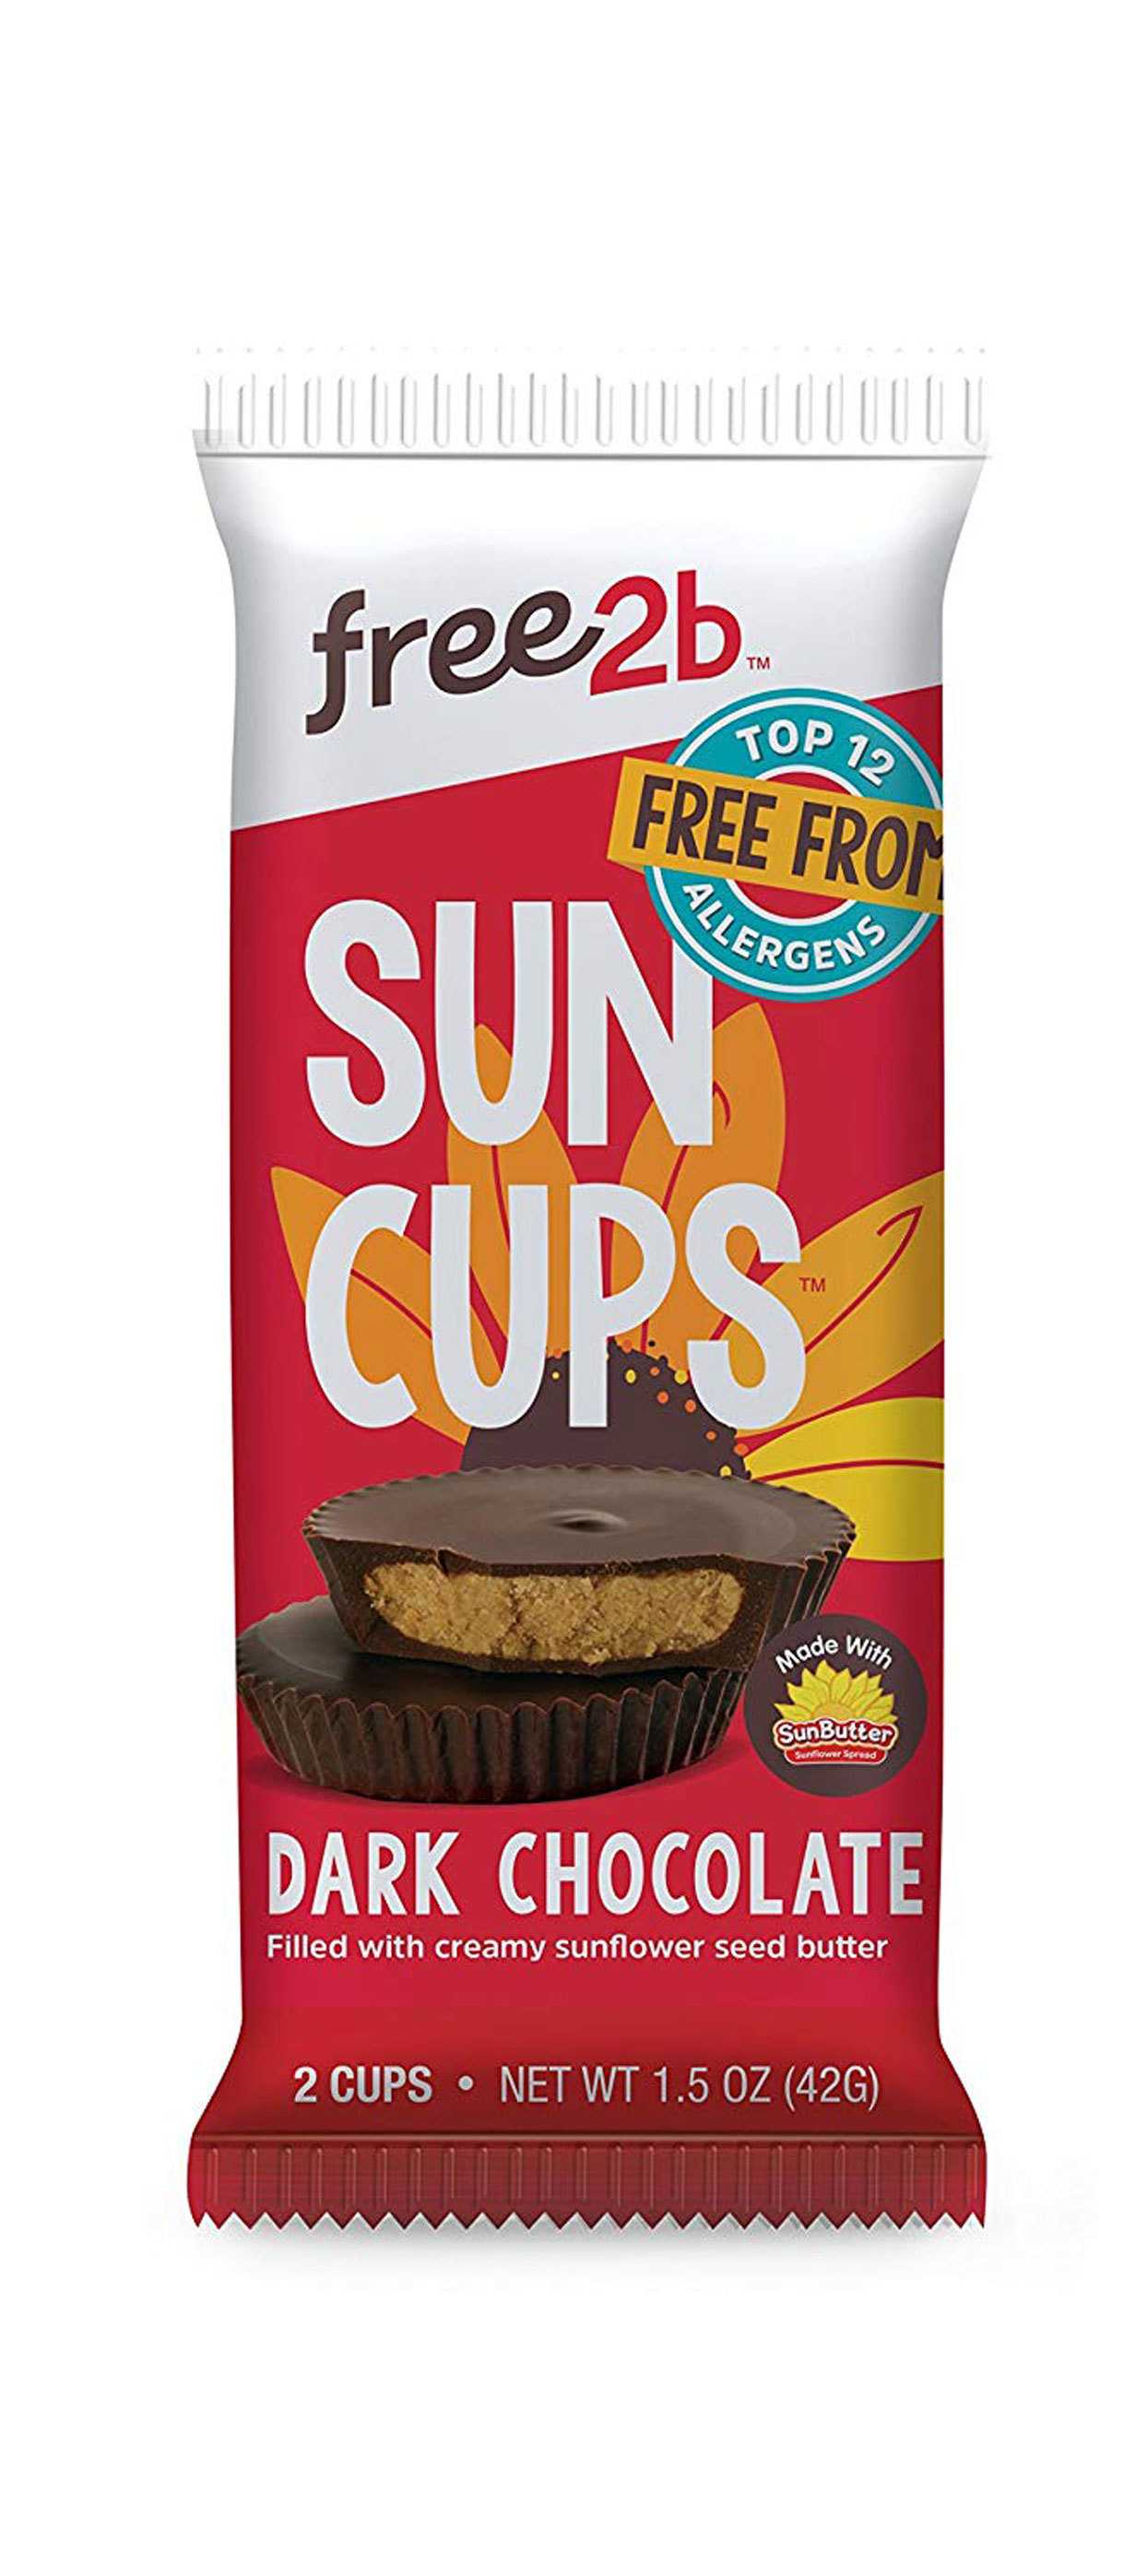 Free2b Sun Cups - dark chocolate filled with sunflower seed butter